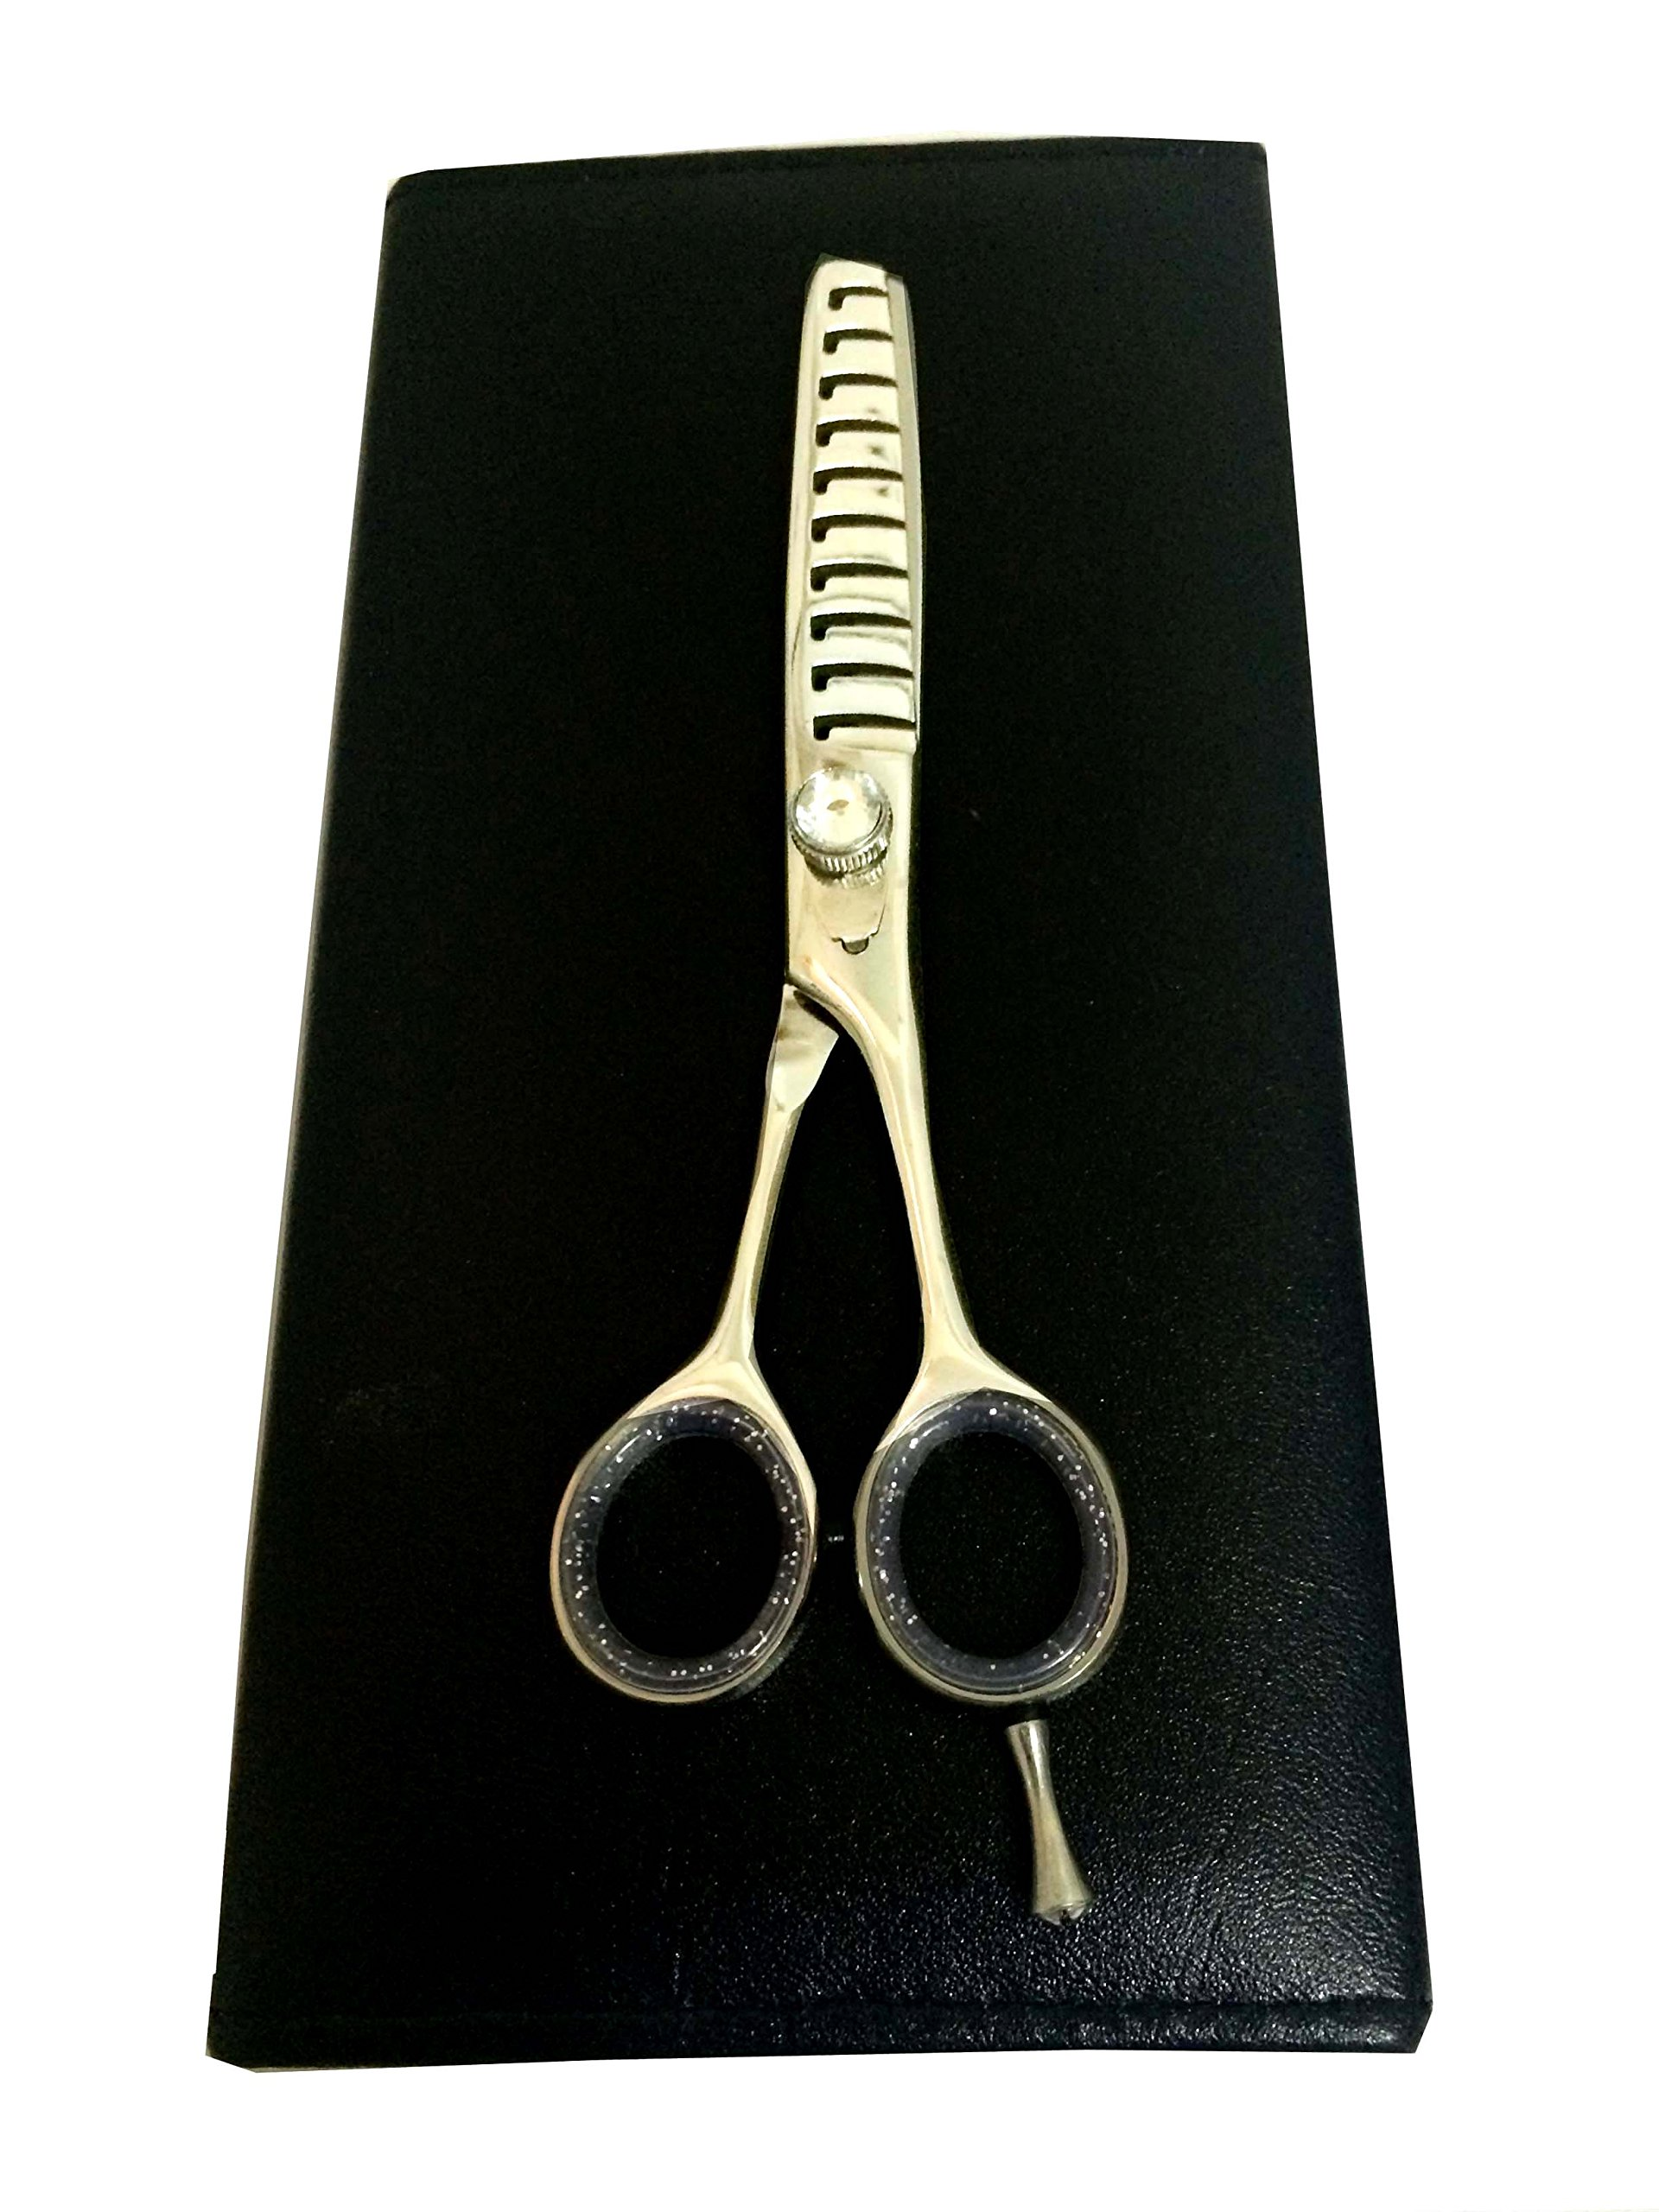 ZZZRT New Polish J2 10-teeth Japanese Steel Professional Razor Edge Barber Thinning, blending, layering and texturizing Scissor/ Shear 6'' + Free Pouch